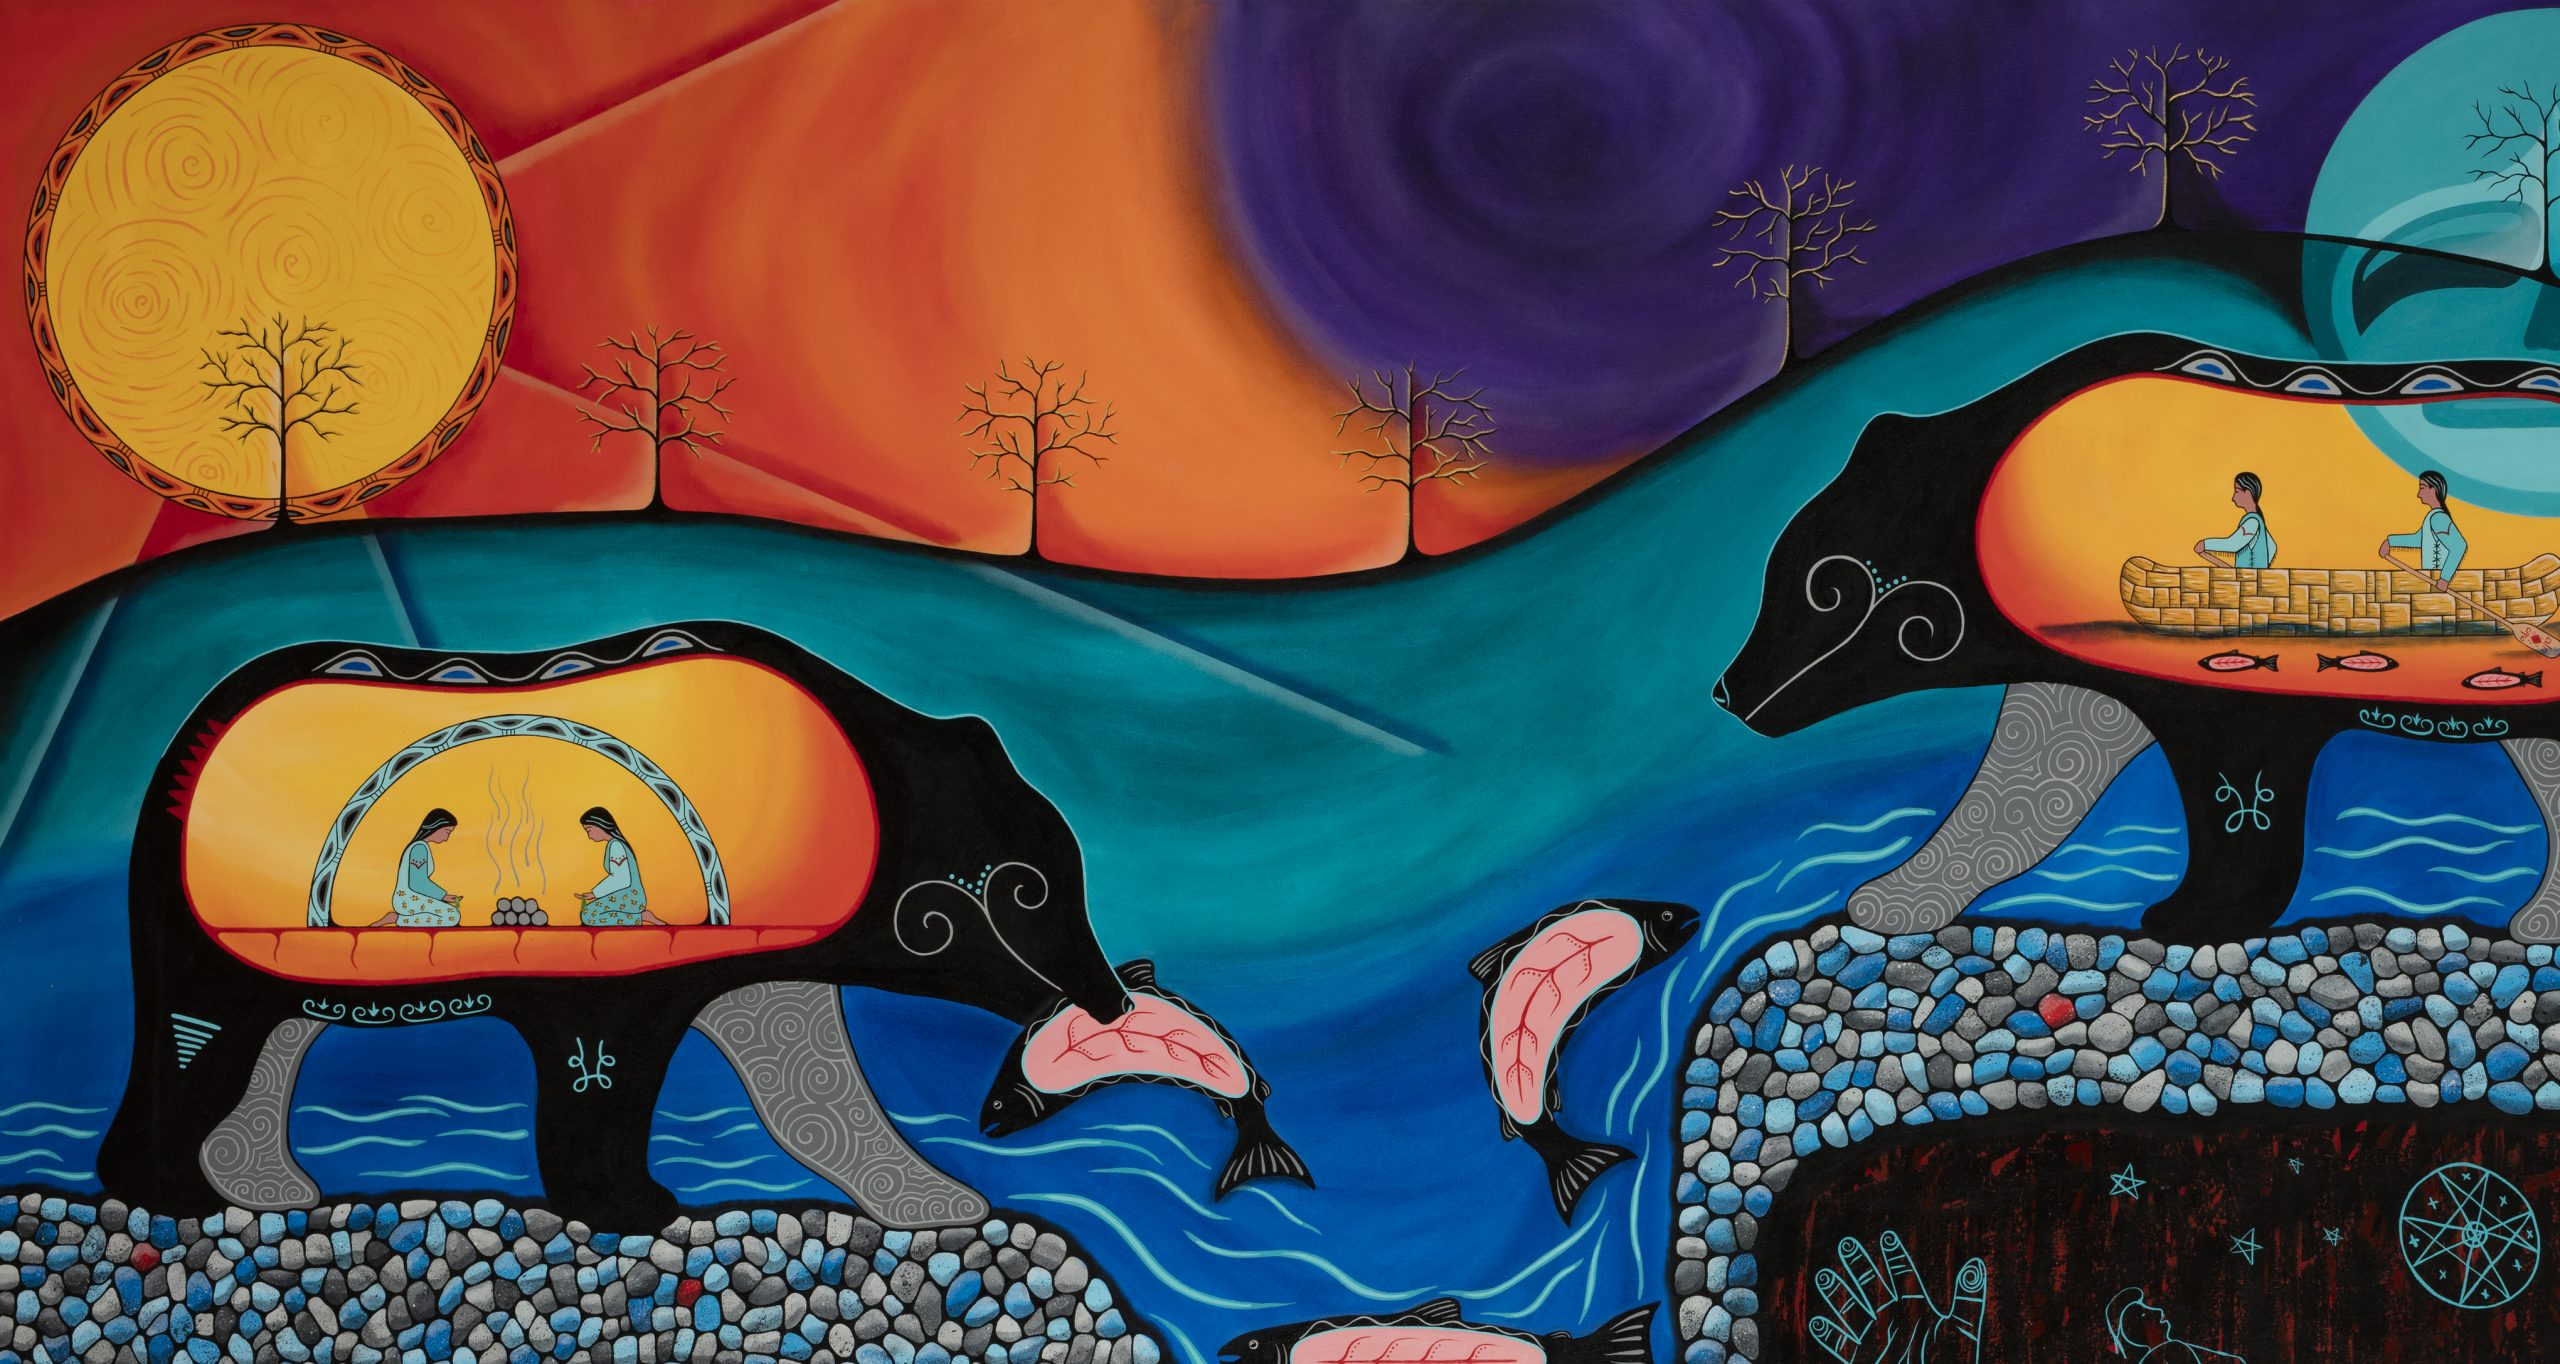 First Nations leaders and delegates to gather virtually Tuesday and Wednesday for the 41st AFN Annual General Assembly